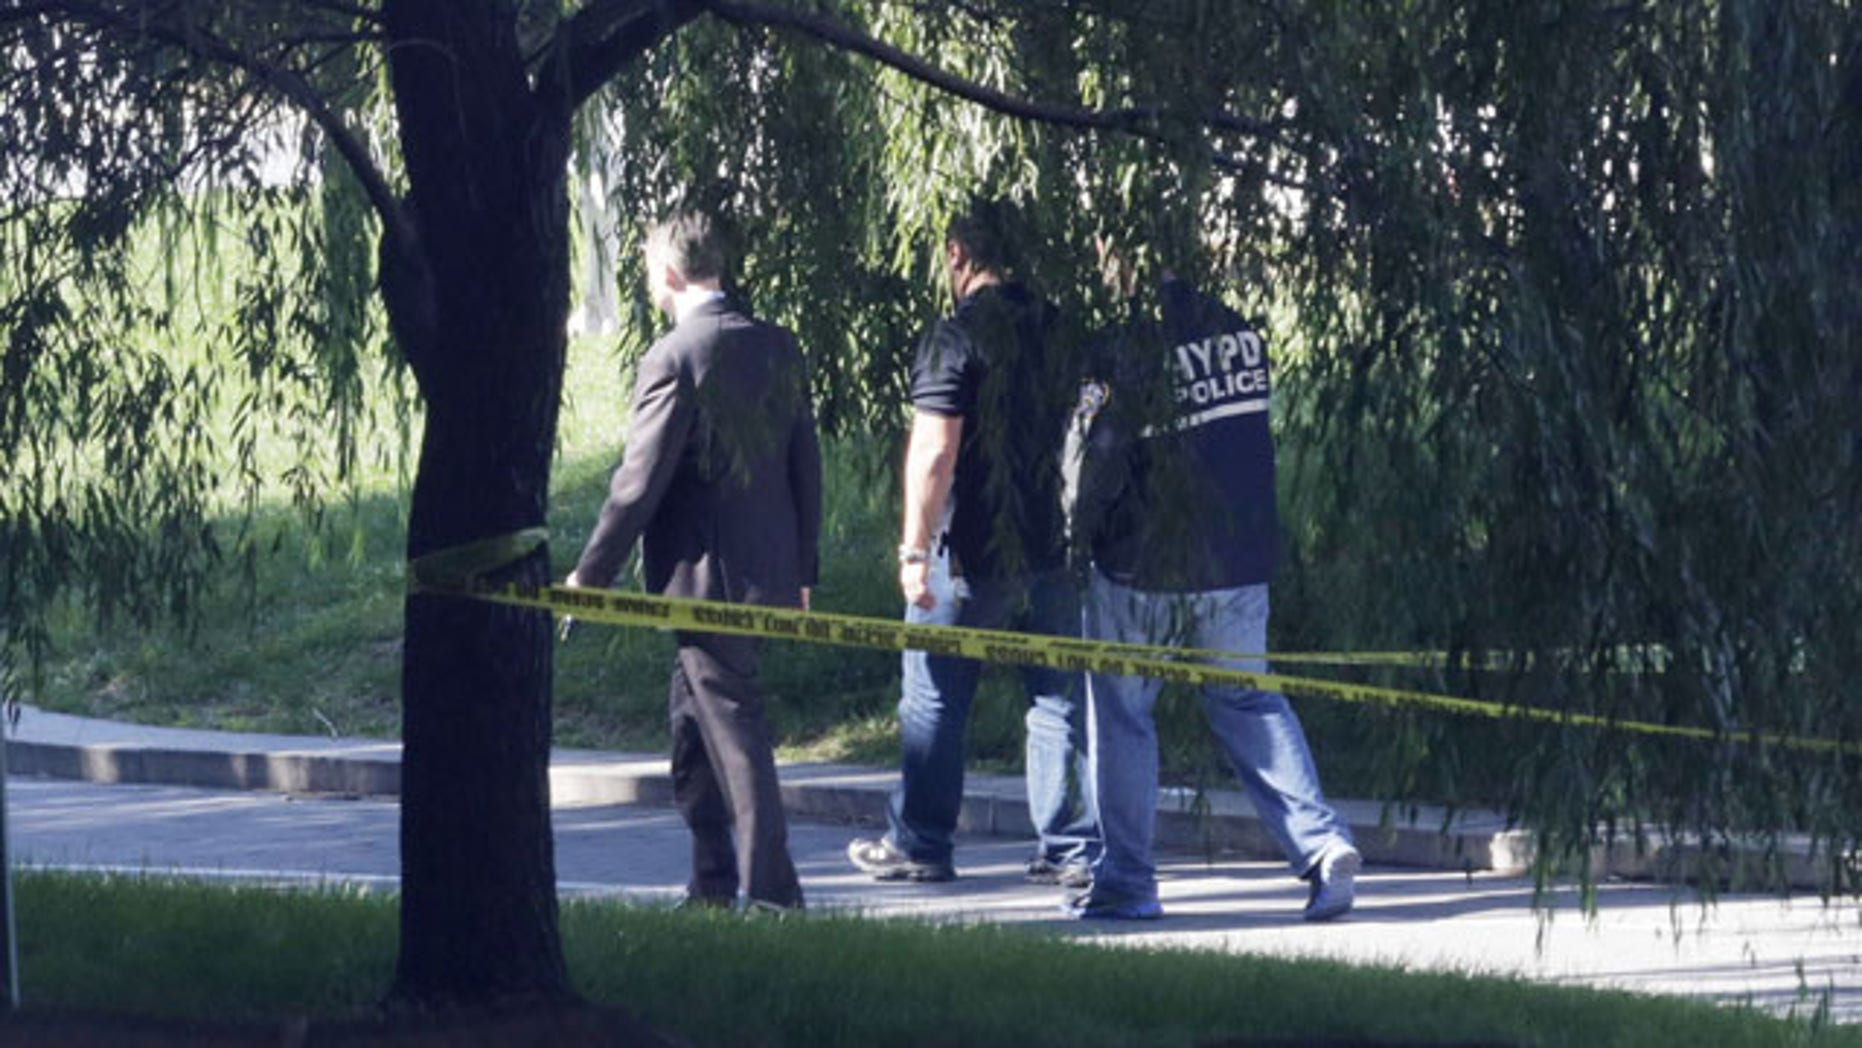 October 1, 2013: Crime scene investigators walk along a path in New York's Riverside Park South where a man earlier went on a rampage stabbing five people Tuesday, including a toddler. (AP Photo)